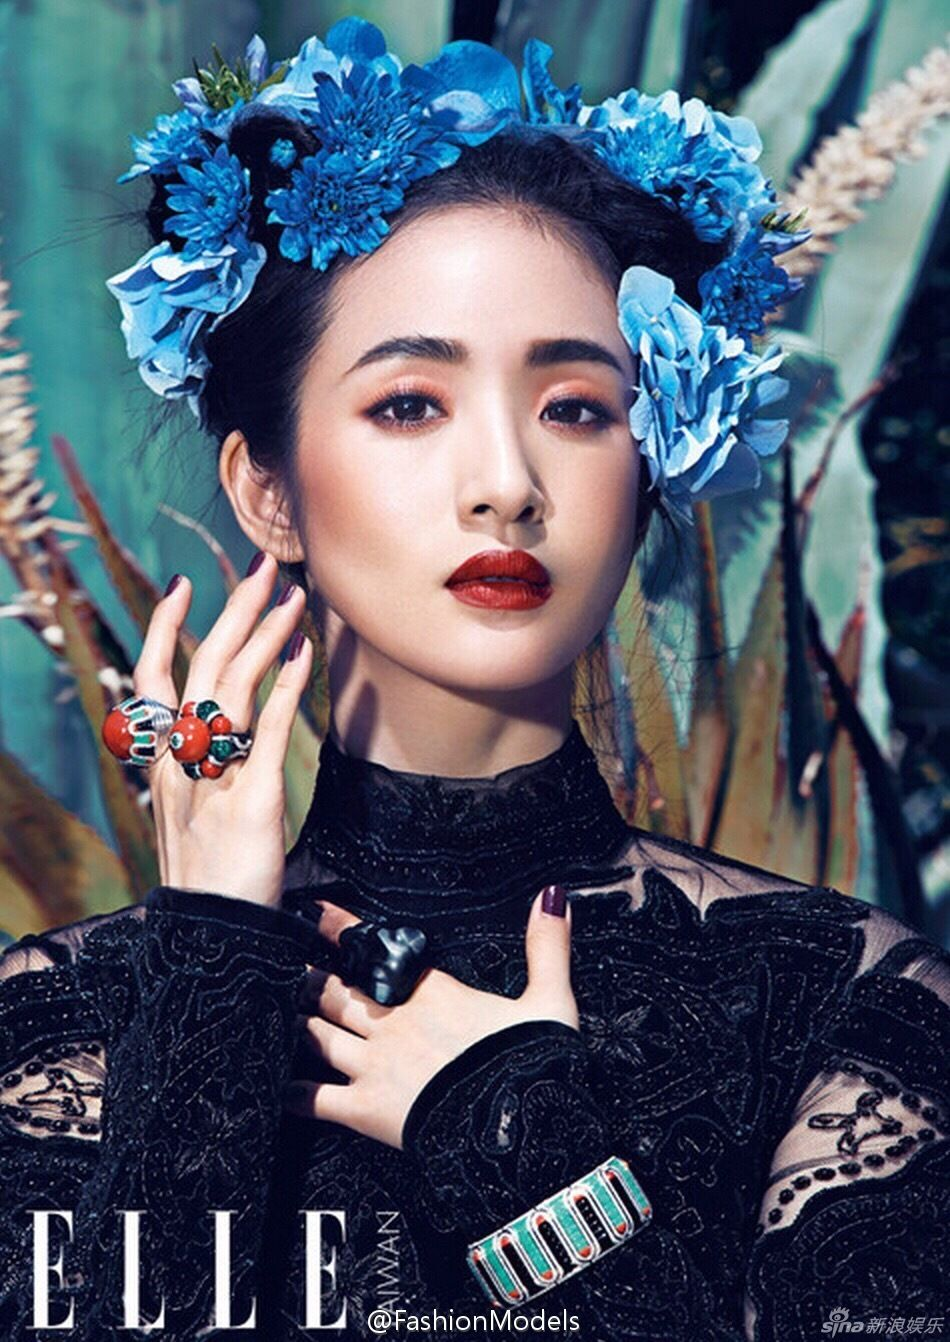 Ariel Lin In A Frida Kahlo Inspired Photoshoot For Elle -1710